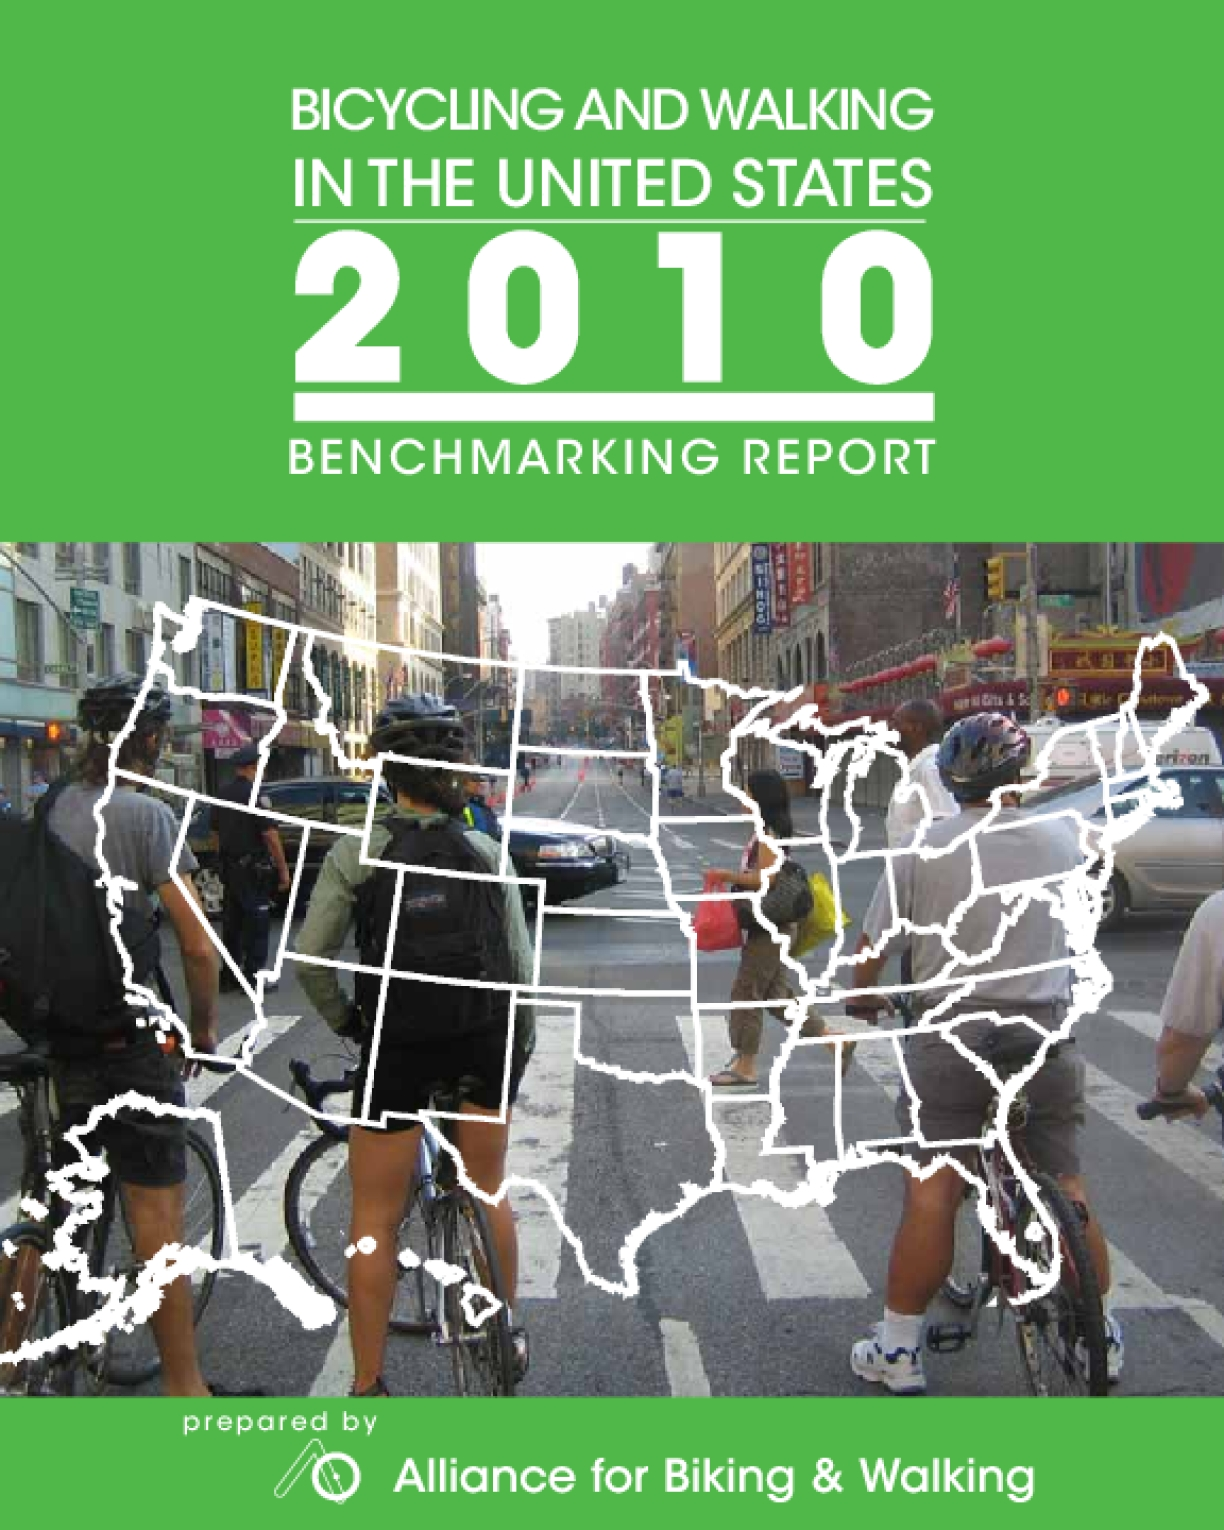 Bicycling and Walking in the U.S.: 2010 Benchmarking Report